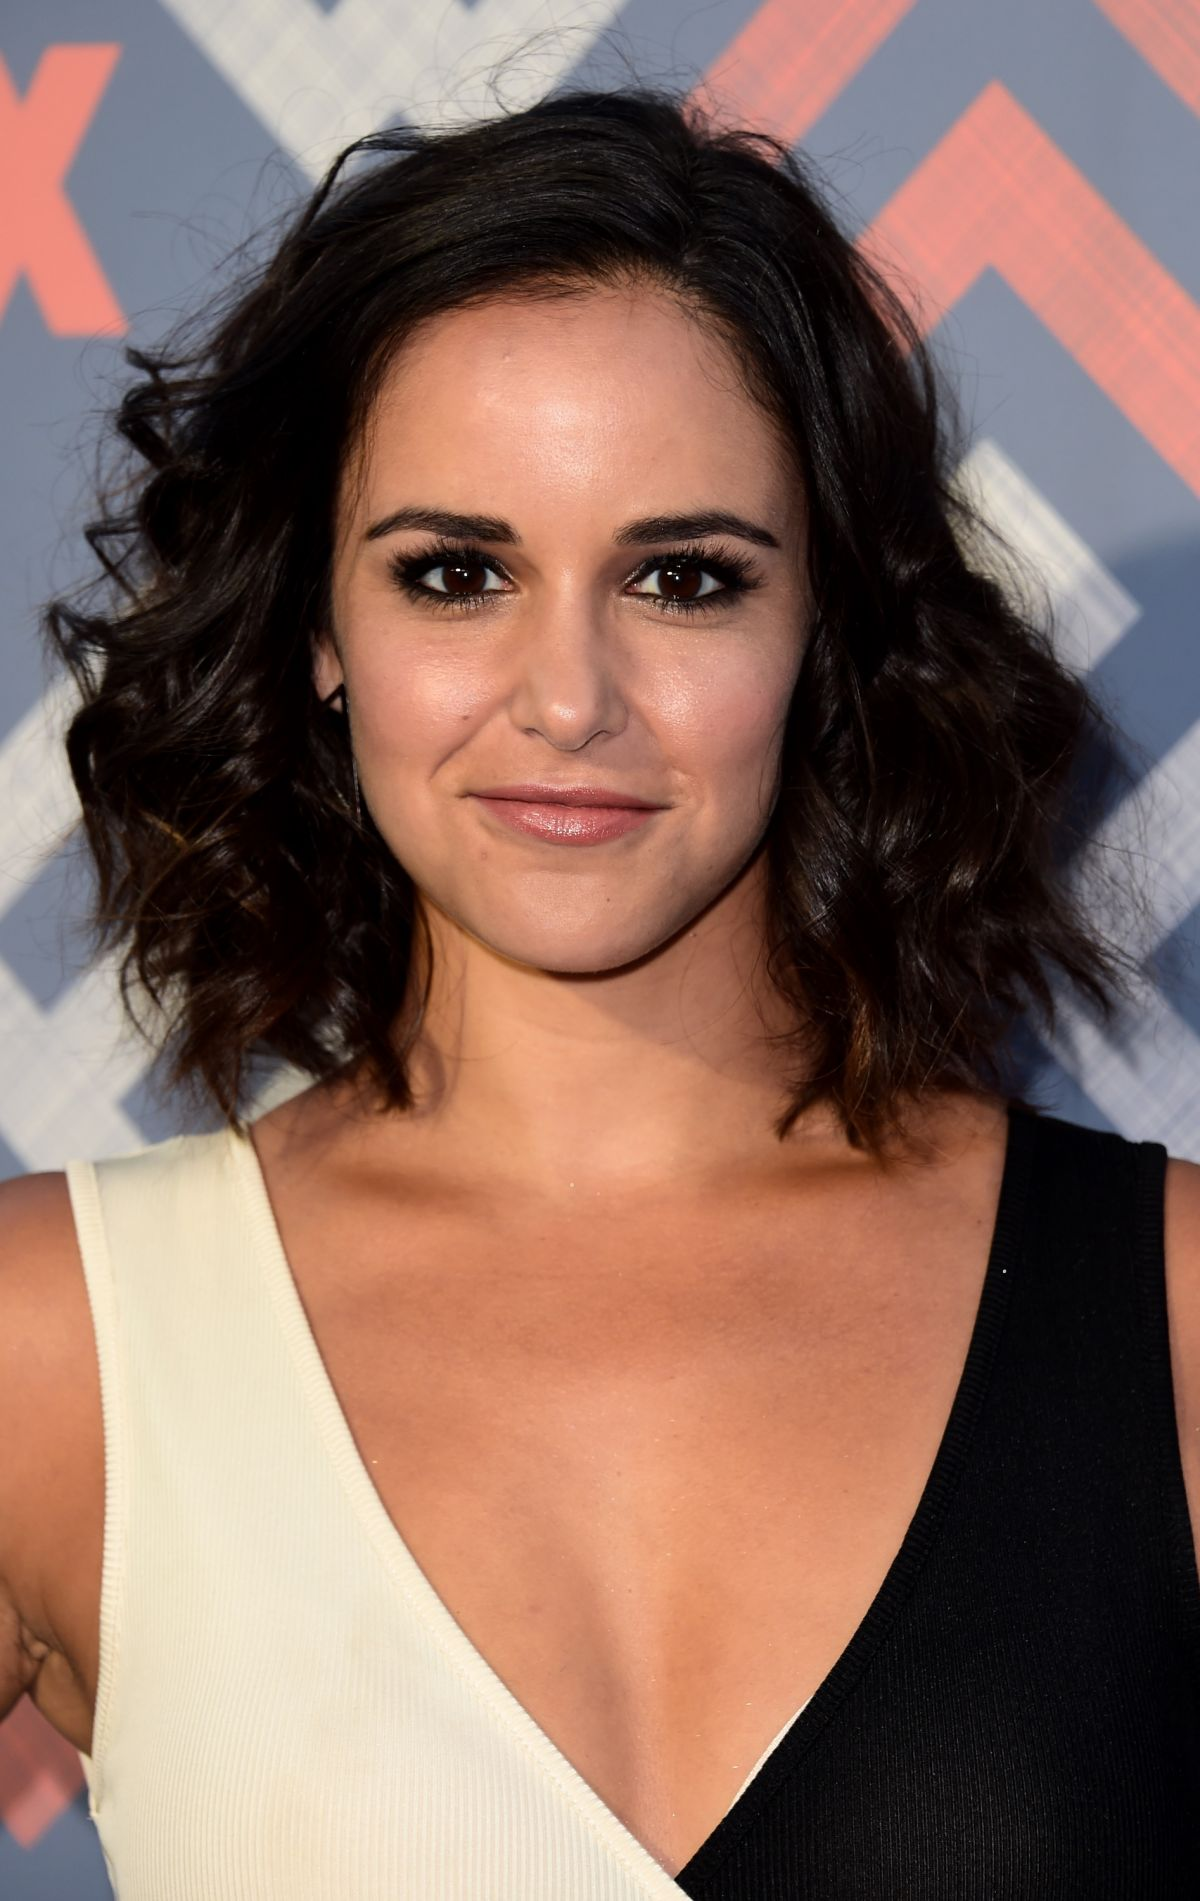 MELISSA FUMERO at Variety Power of Young Hollywood in Los Angeles 08/08/2017